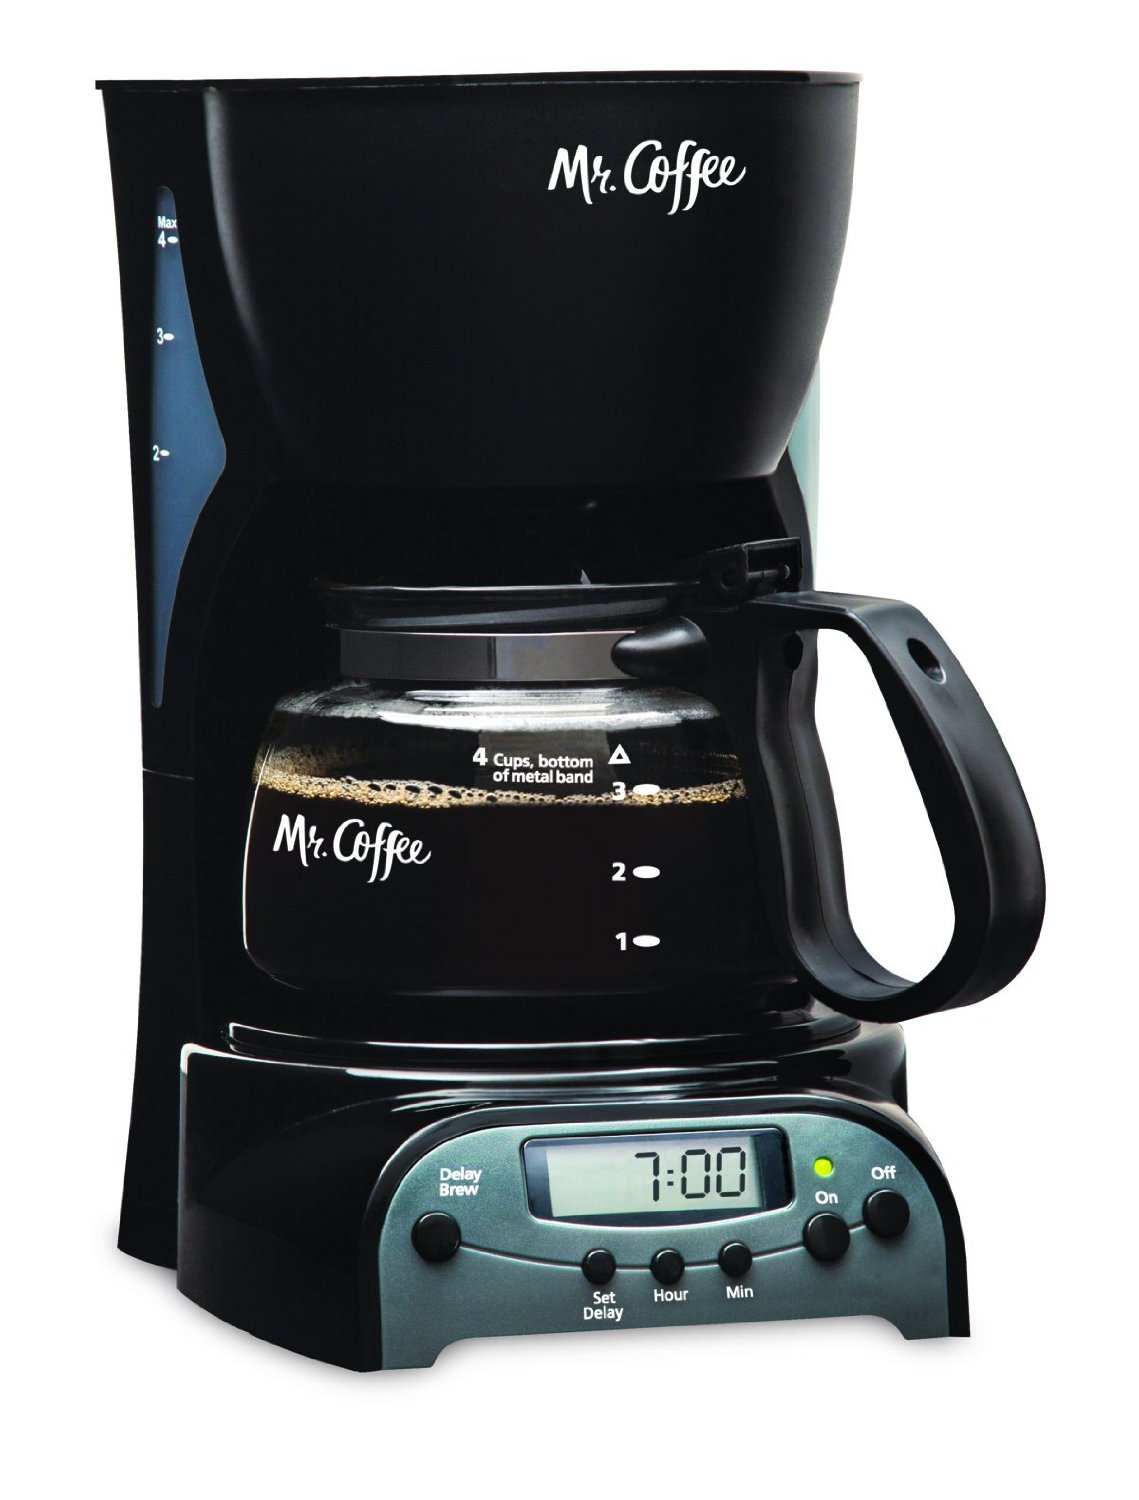 10 Best Drip Coffee Maker Reviews — Cream of the Crop (2020)